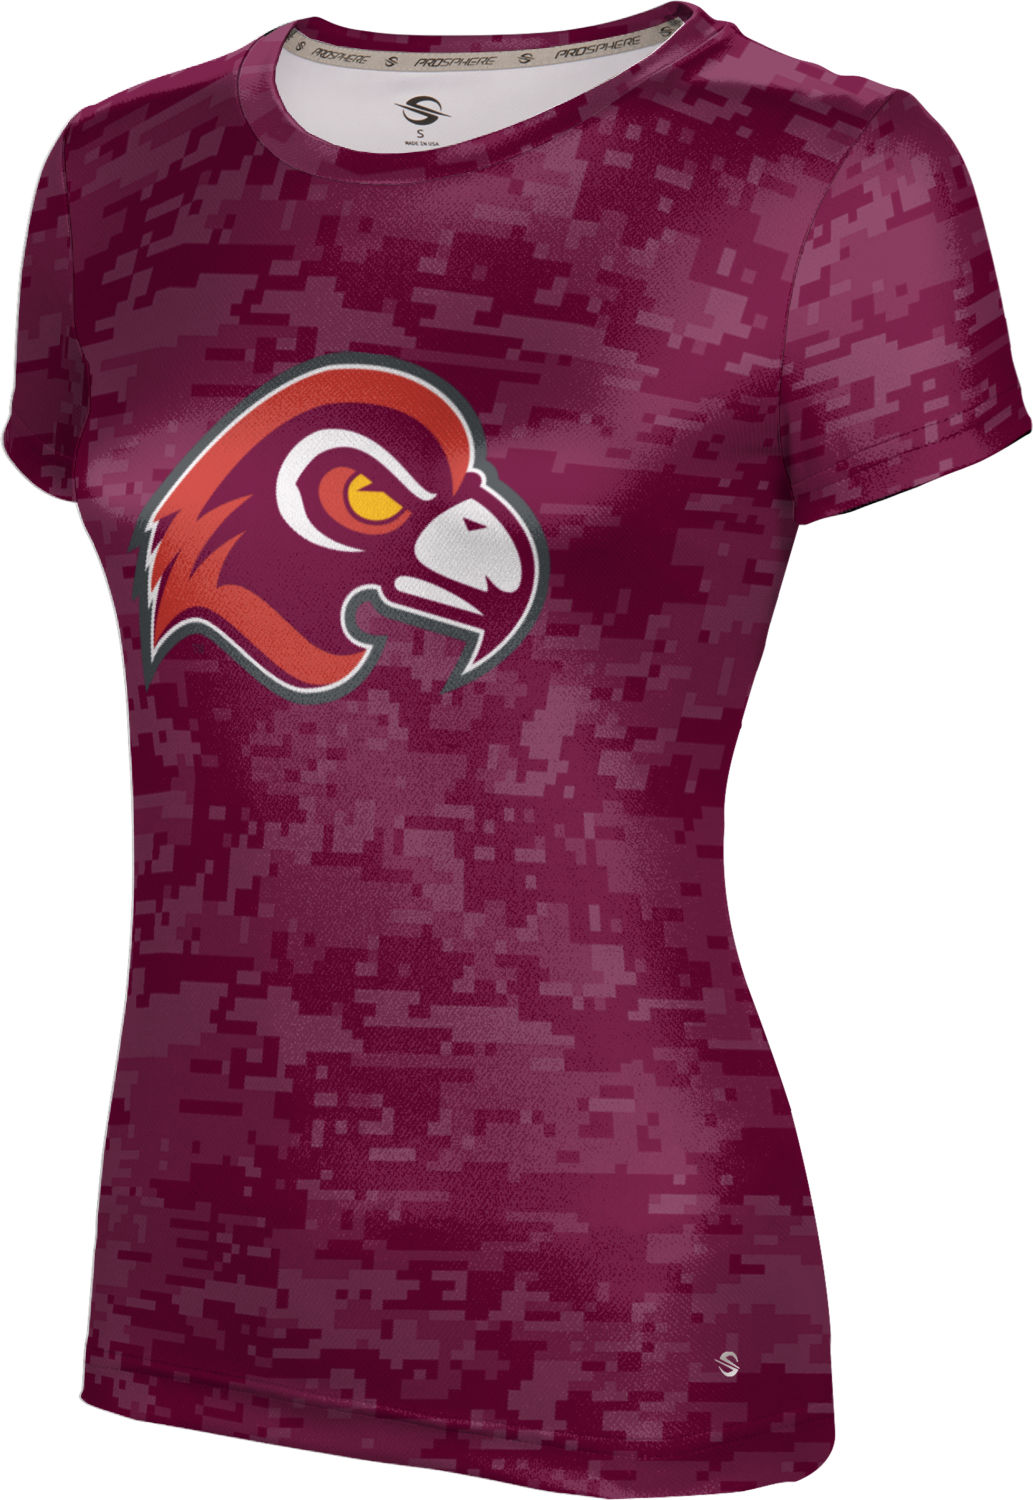 ProSphere Girls' Fairmont State University Digital Tech Tee